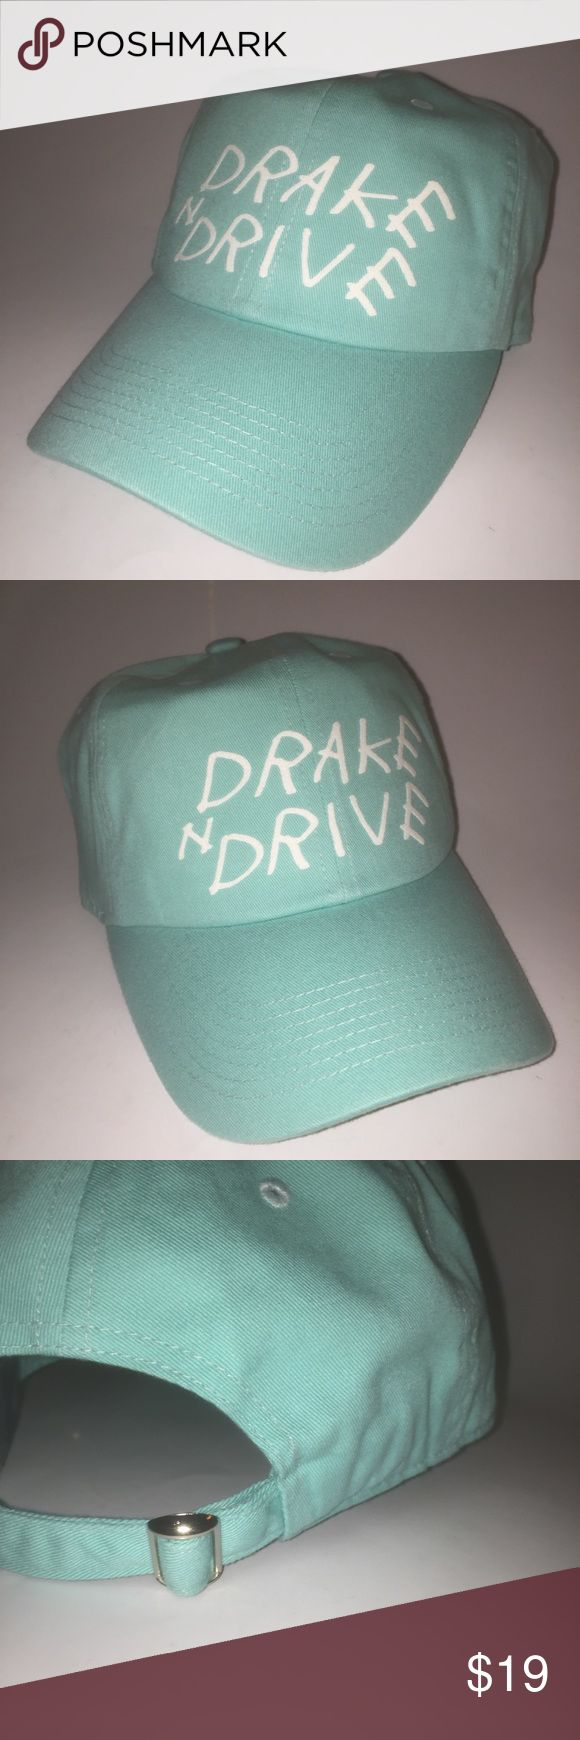 Drake n Drive Dad Hat NWT This Mint Blue  Strapback Dad Hat is adjustable with tuck pocket NEW___Ignore tags: huf, weed, marijuana, kush, obey, stussy, dope, trill, Blvck, boy london, paris, joggers,  trap style, rave, rare, huf, blvck fashion, trill, pipe, dabber, glass, sad, me, goth, goth girl, woes, the six, 6ix, ovo, blvck, Brooklyn, London, pikachu, 6 God, glitter, naps, mobb, asap, long style, Ovo, snapback, pastel, Brandy, American, urban, anti social club, unif Accessories Hats